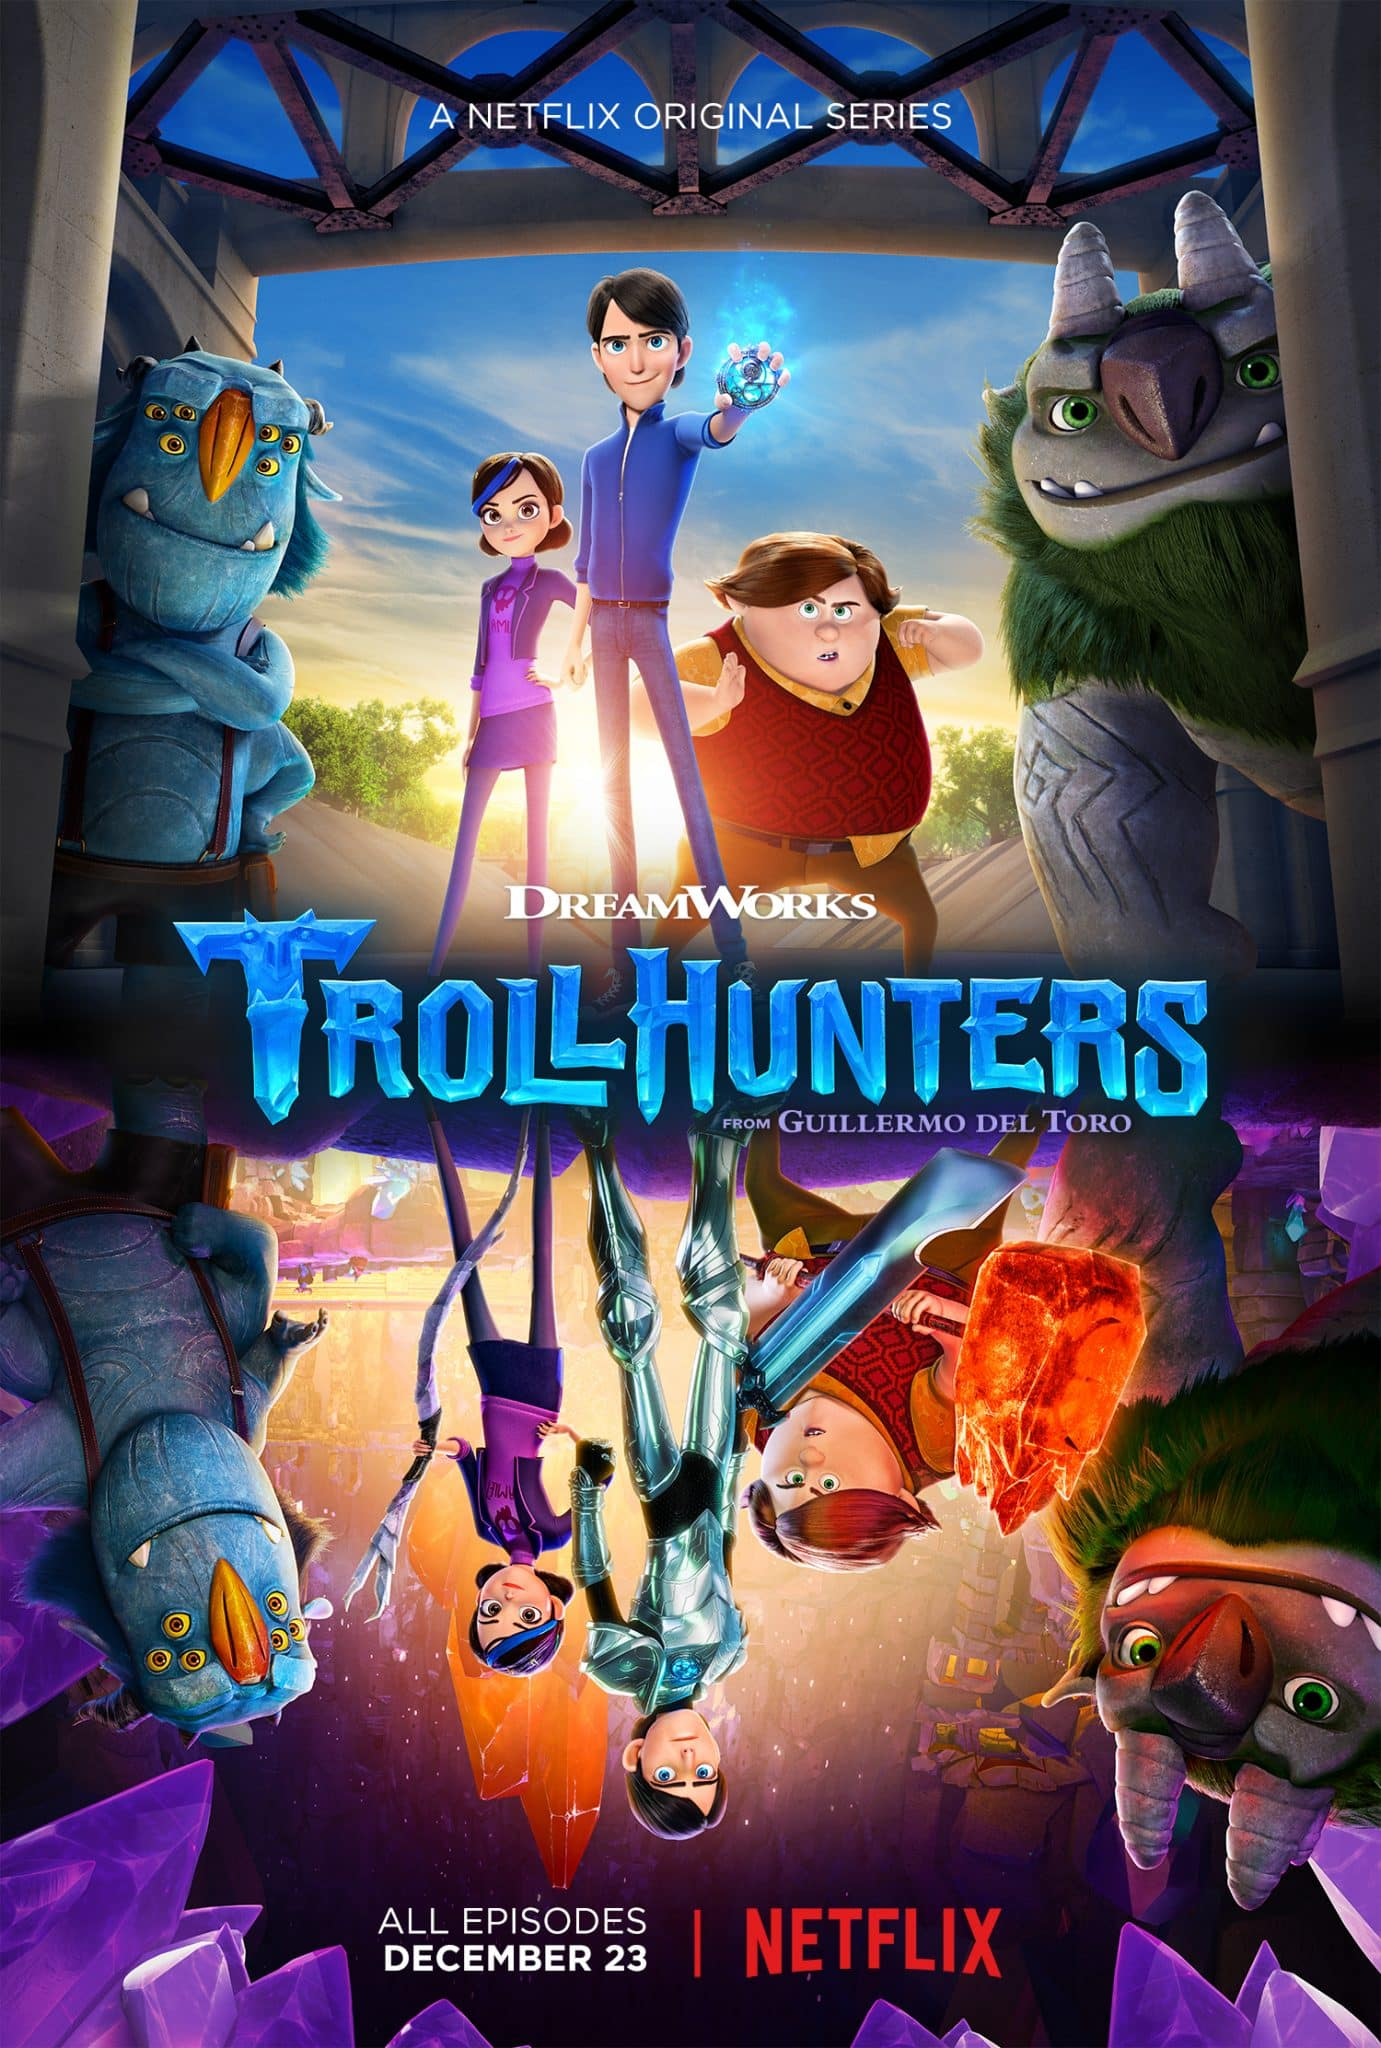 Netflix Trollhunters / Stranger Things Mash Up #Trollhunters | ThisNThatwithOlivia.com